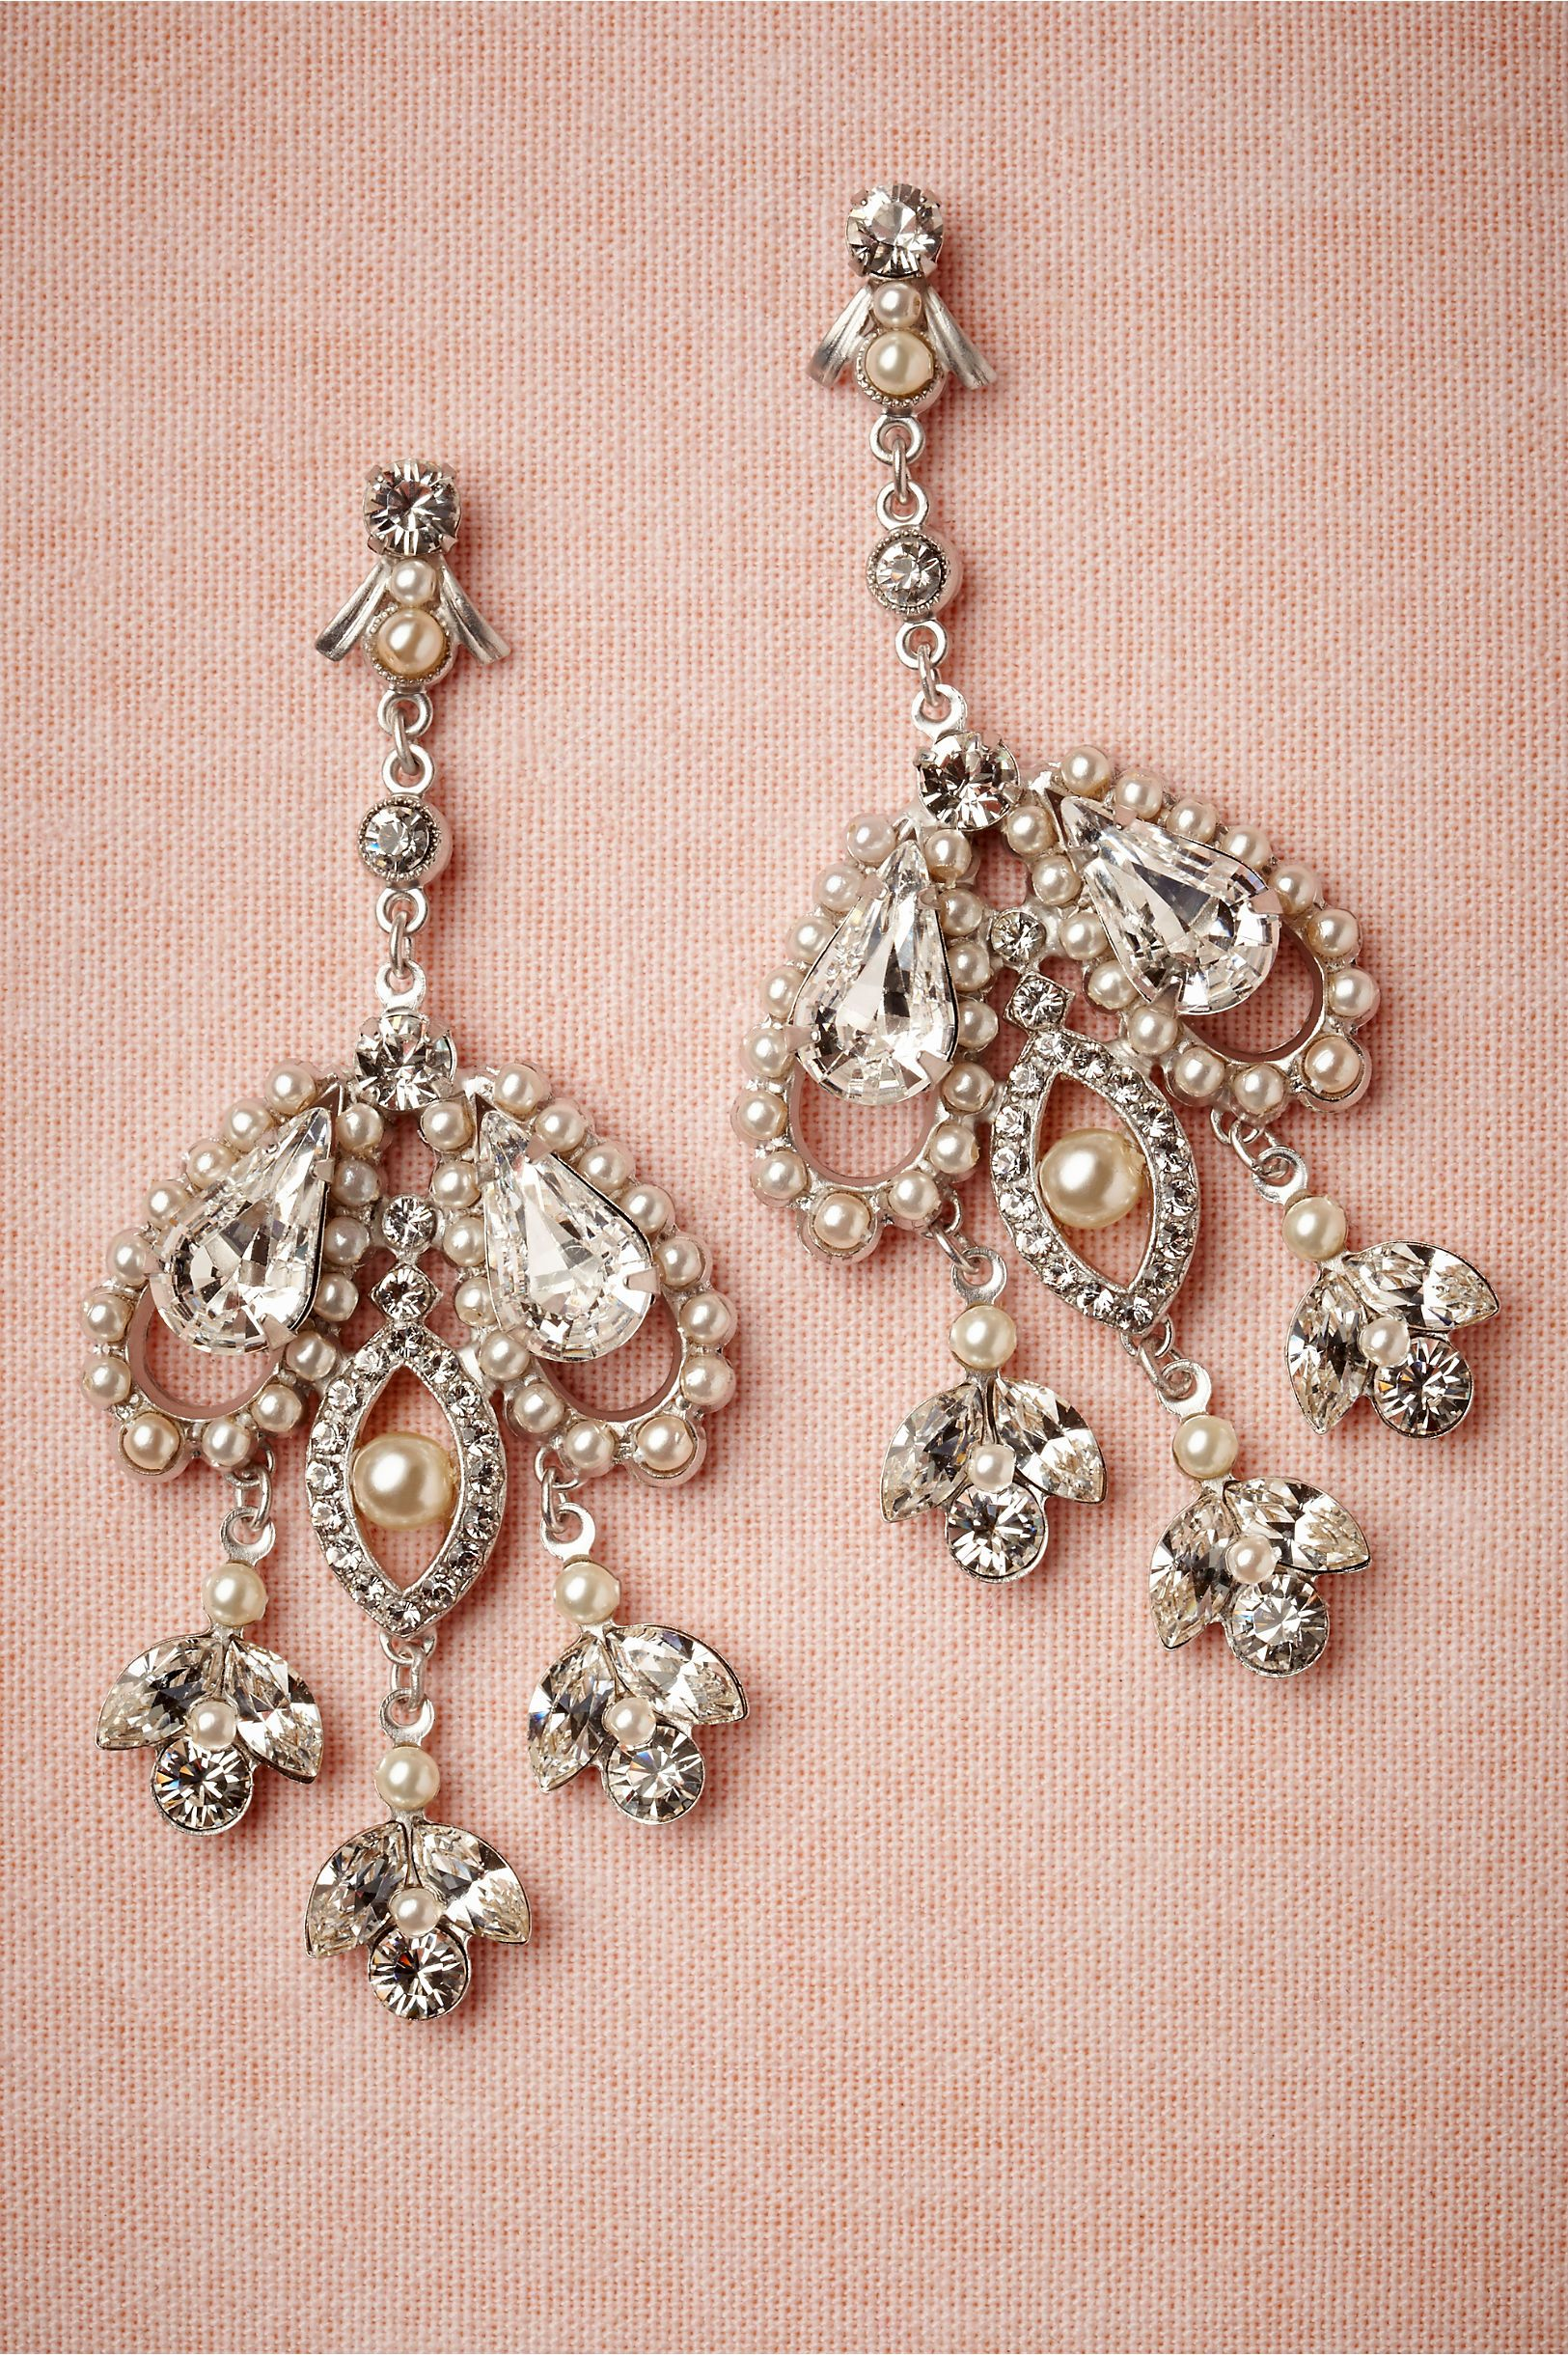 Pin by LuxeFinds.com . on Wedding Day Jewelry | Pinterest | Bridal ...